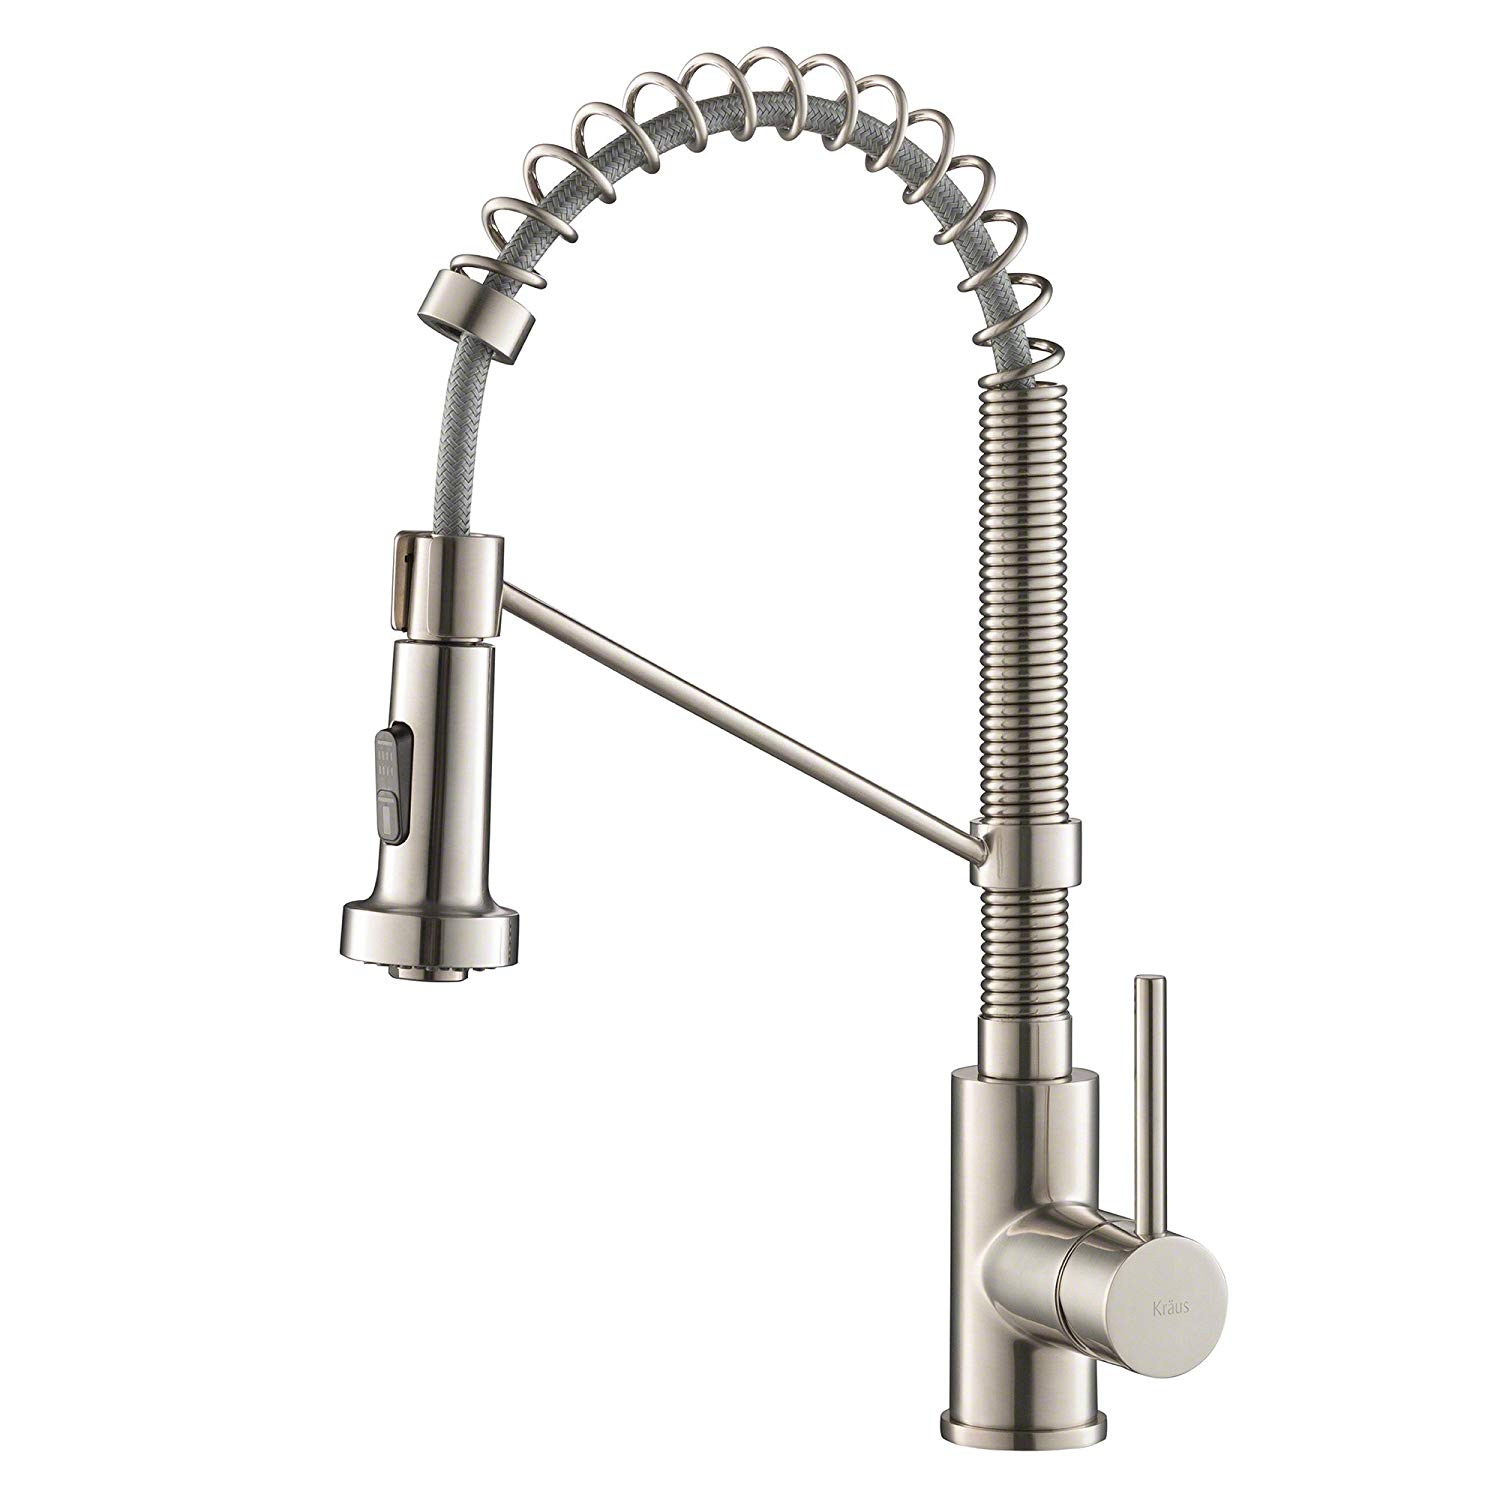 Best Kitchen Faucet Reviews 2019 Top Rated Brands For